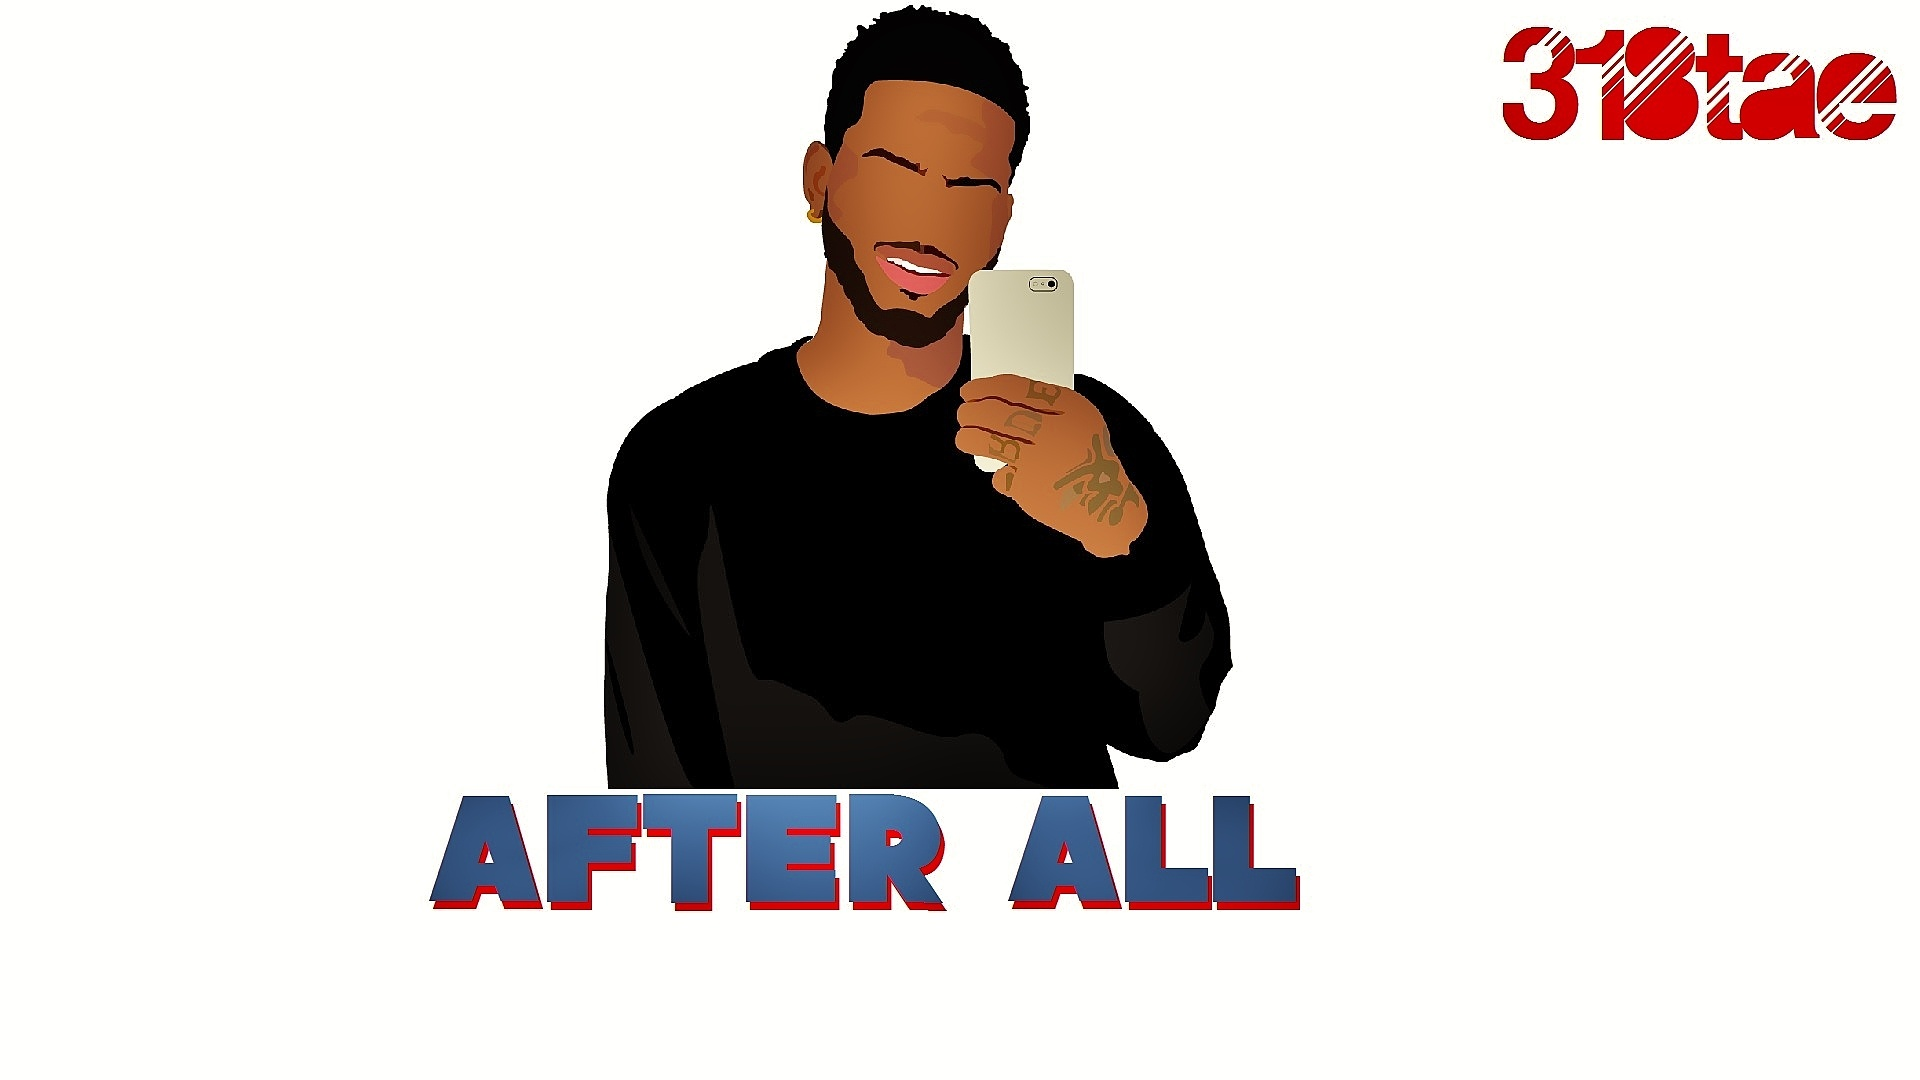 After All - Untagged WAV Download (Prod. 318tae)